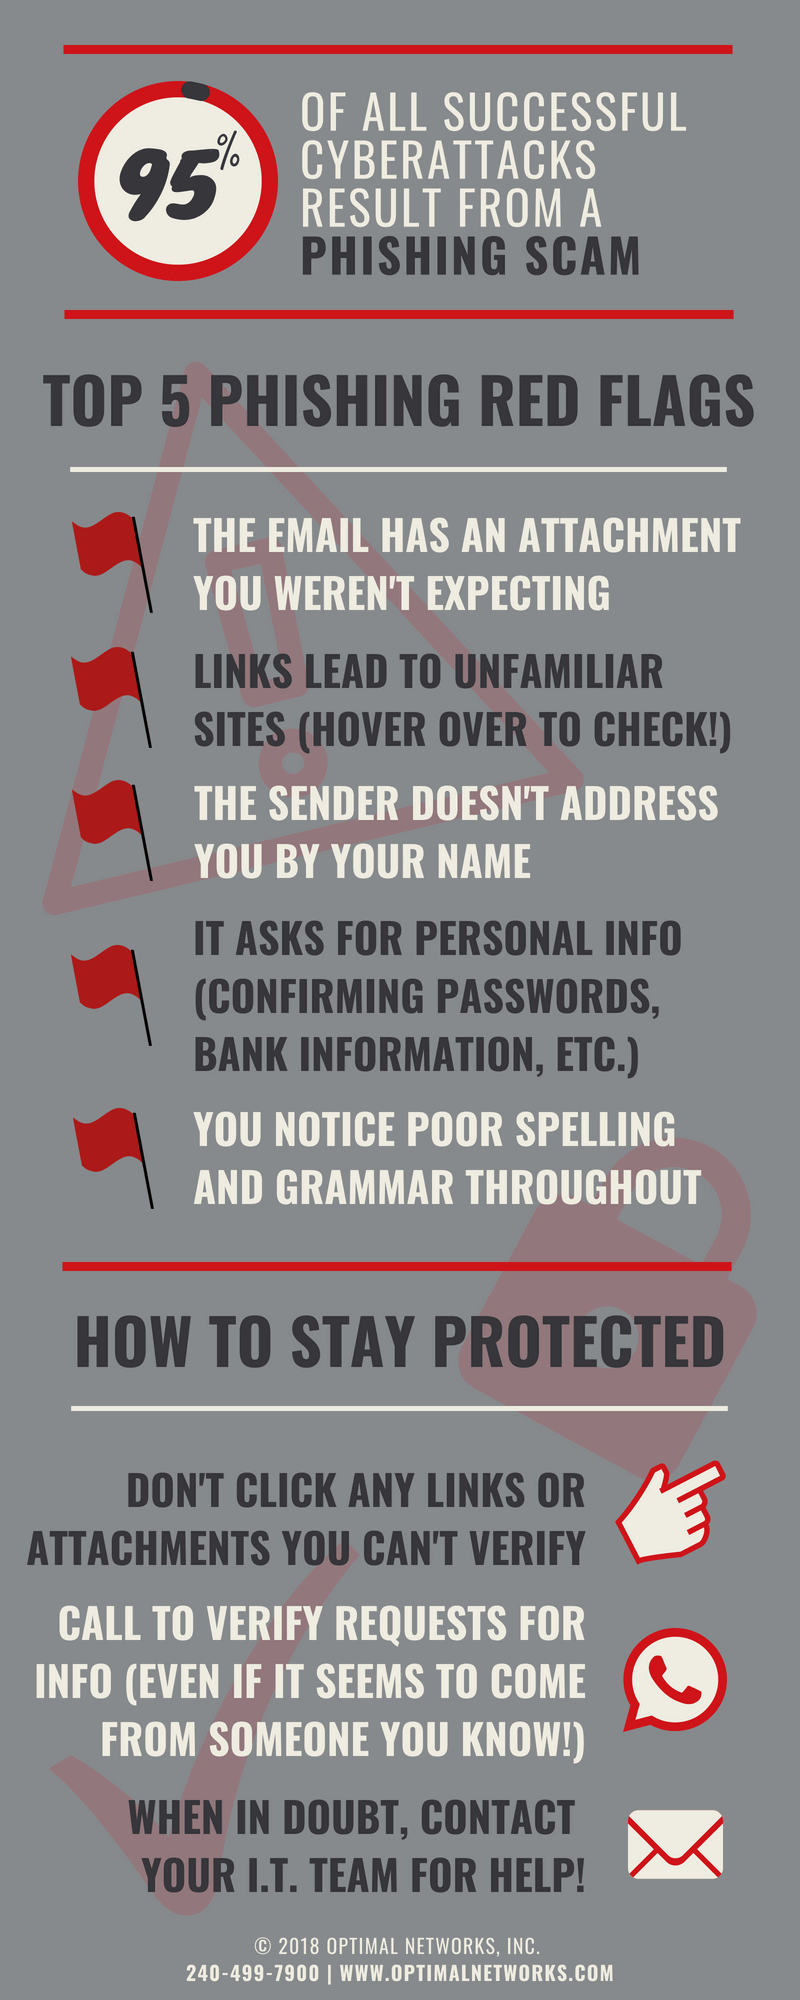 Top 5 Phishing Red Flags